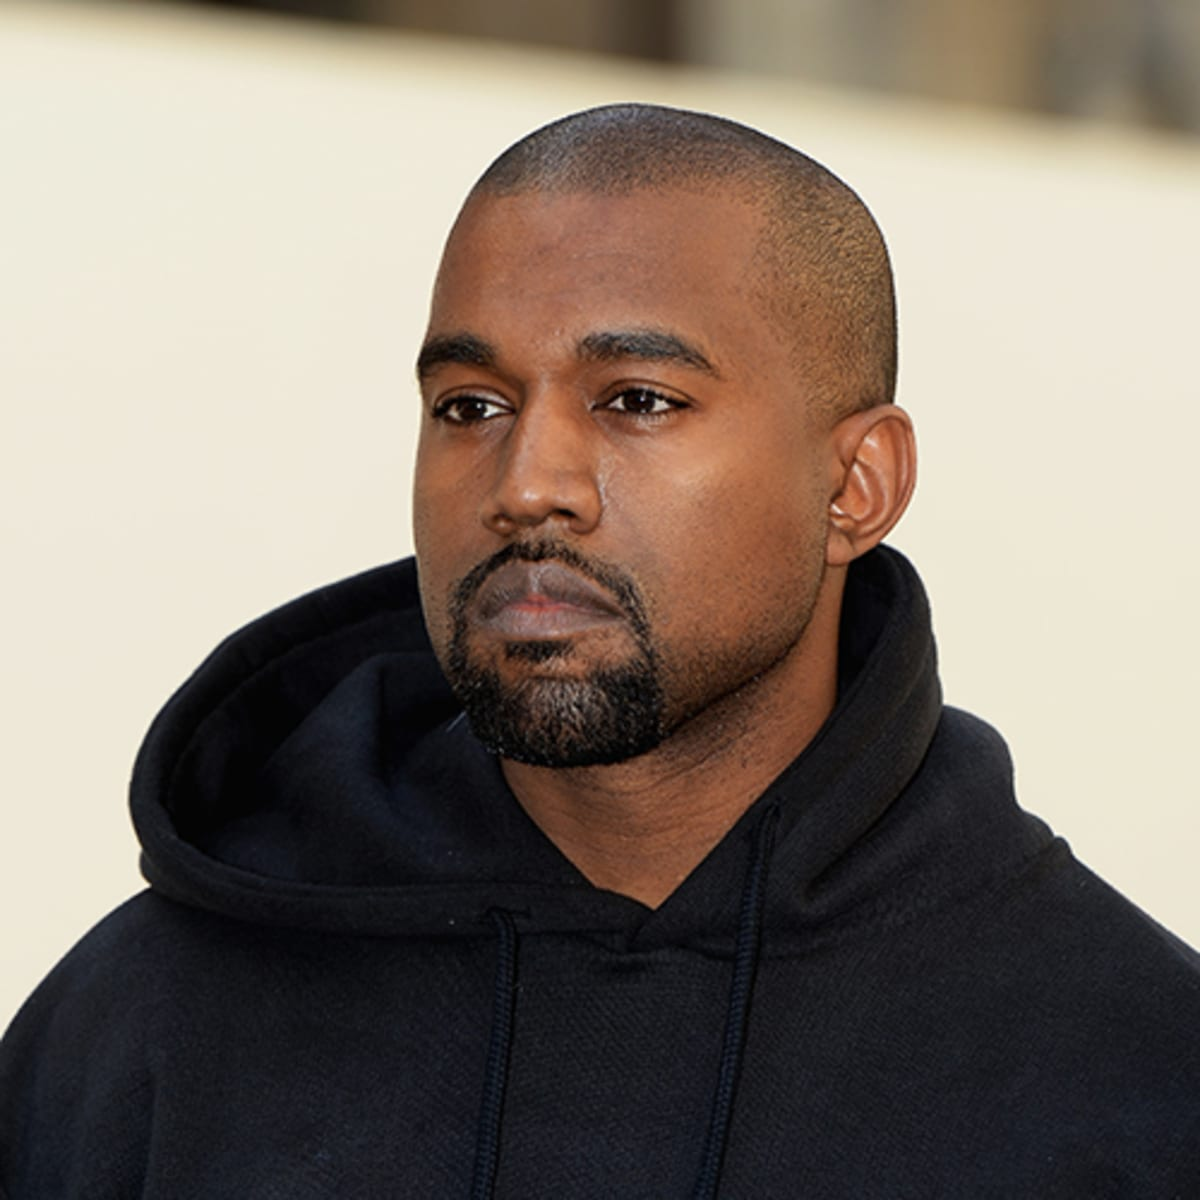 KUWTK: Kanye West Officially Out Of The Home He Used To Share With Kim Kardashian And She's Reportedly Redecorating!